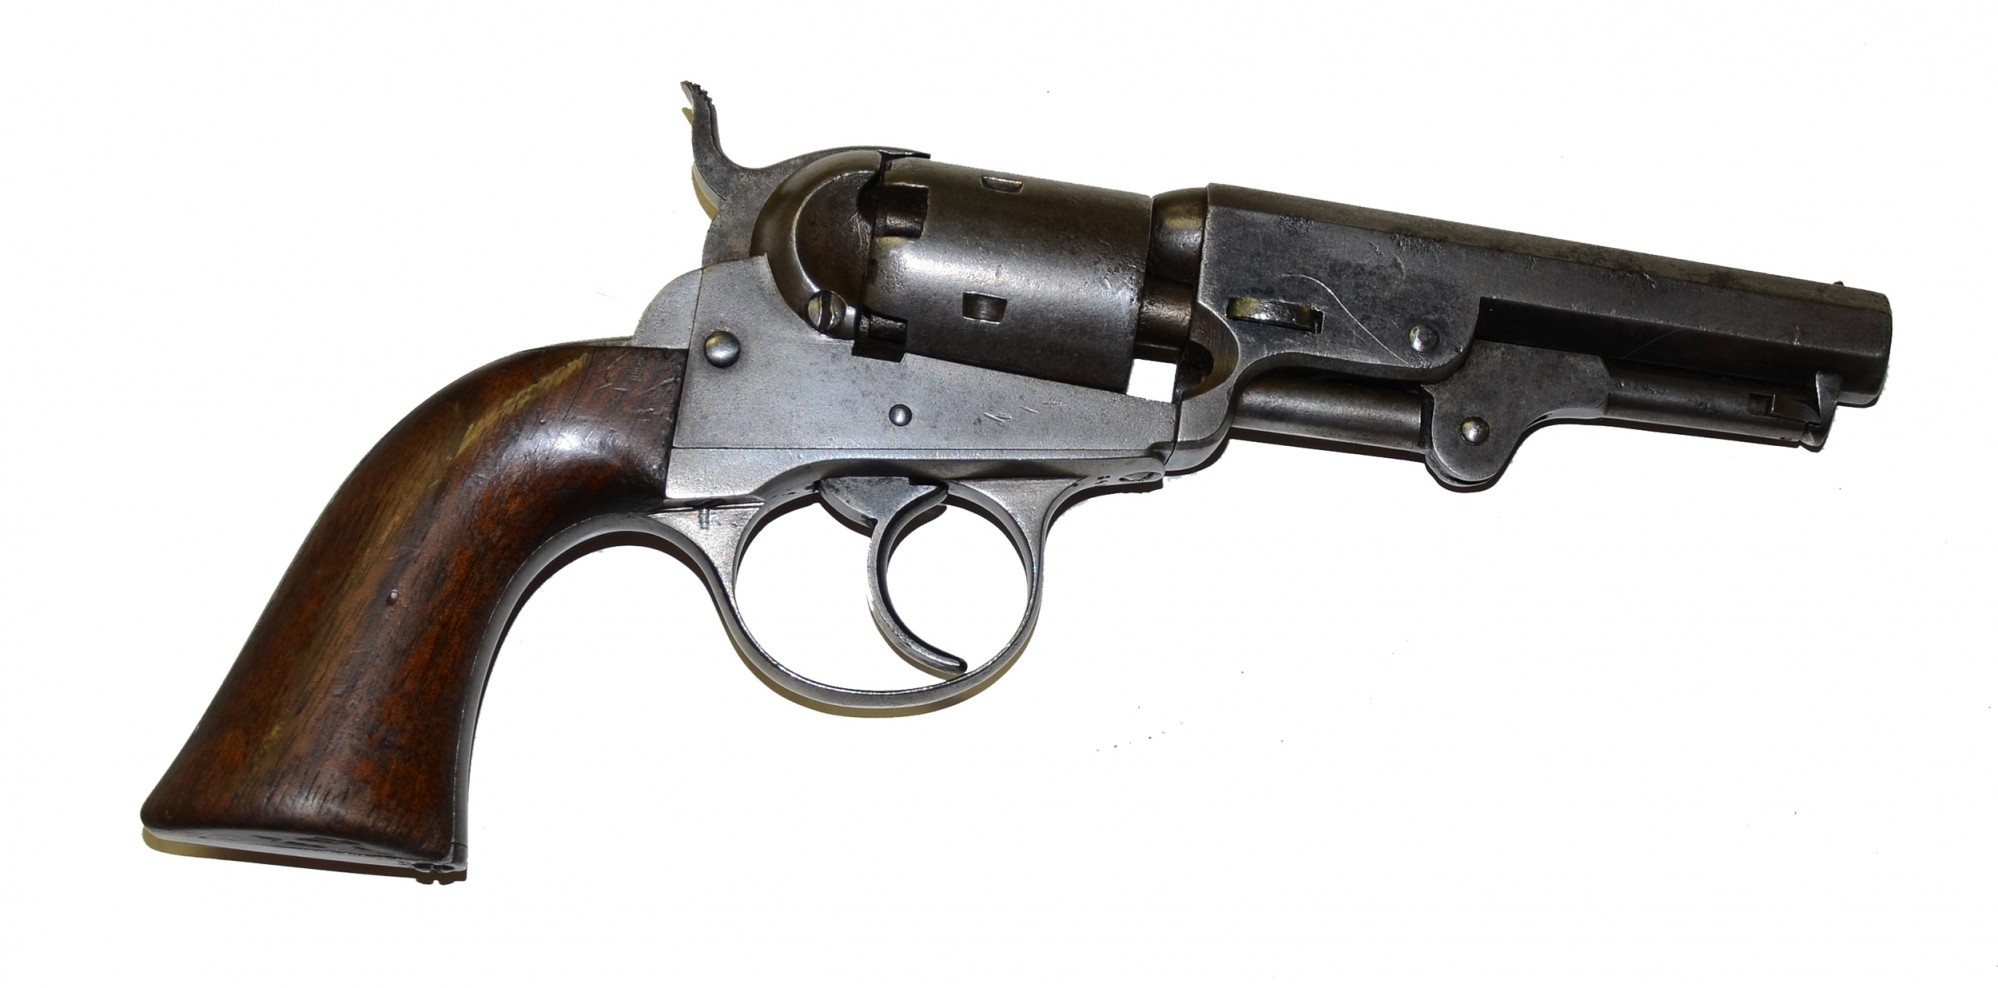 COOPER DOUBLE ACTION POCKET MODEL REVOLVER SECOND VARIATION